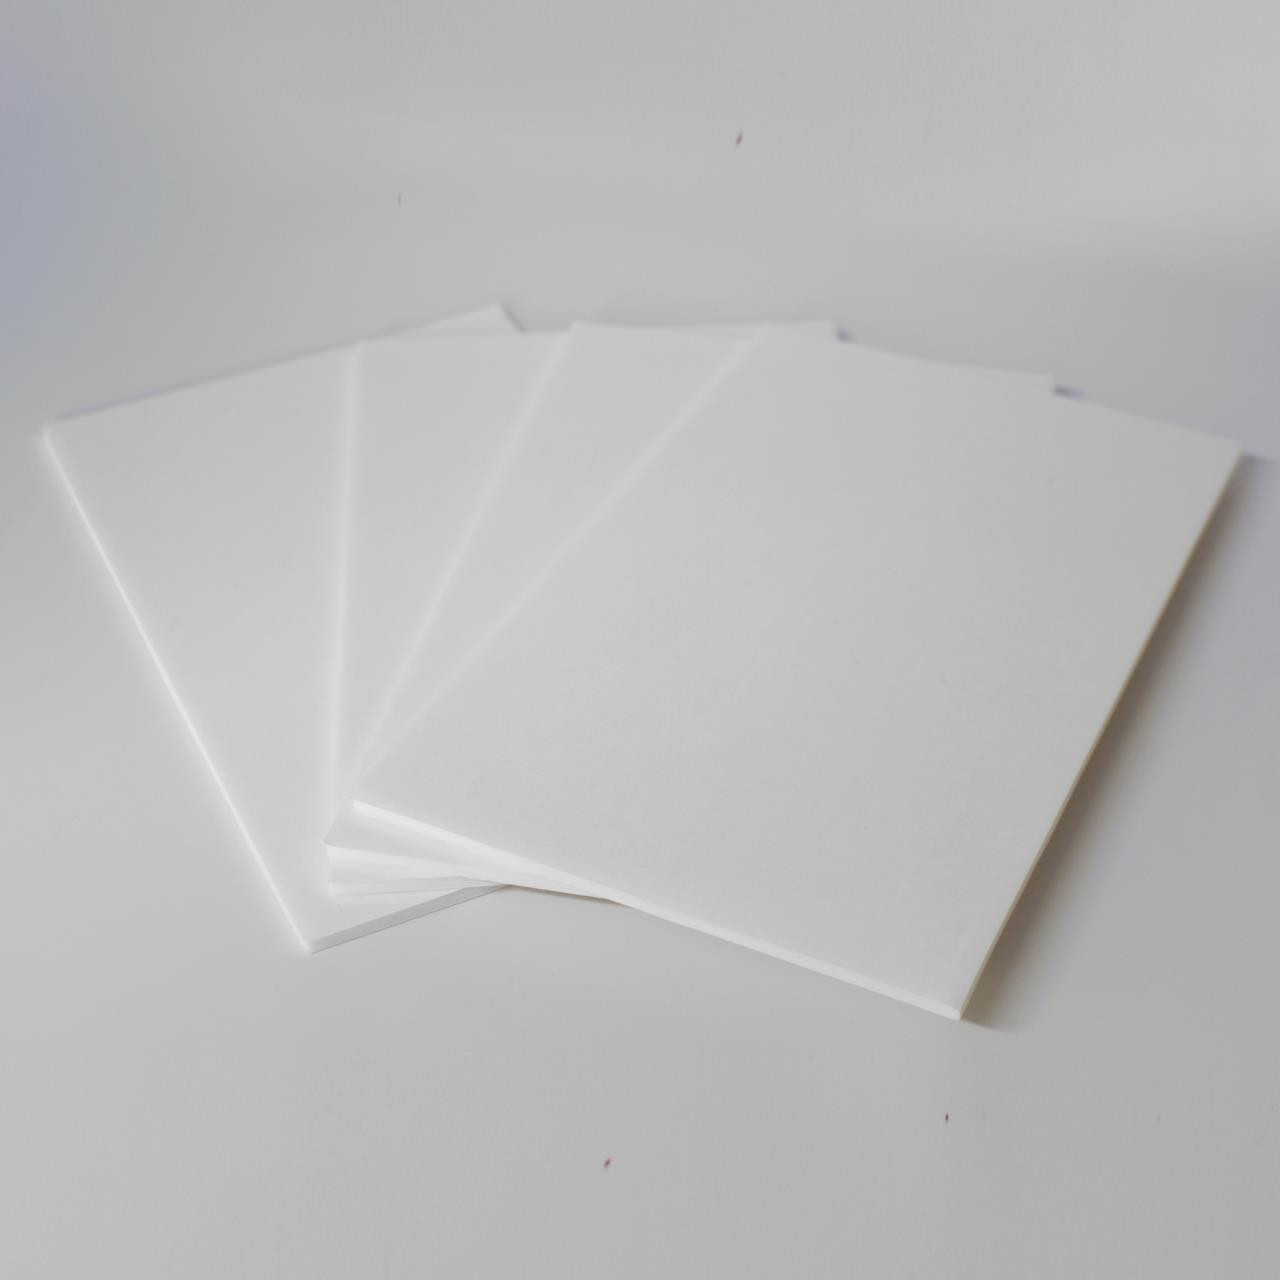 Thick Foam Sheets - Double Sided Adhesive, Cheery Lynn Designs -